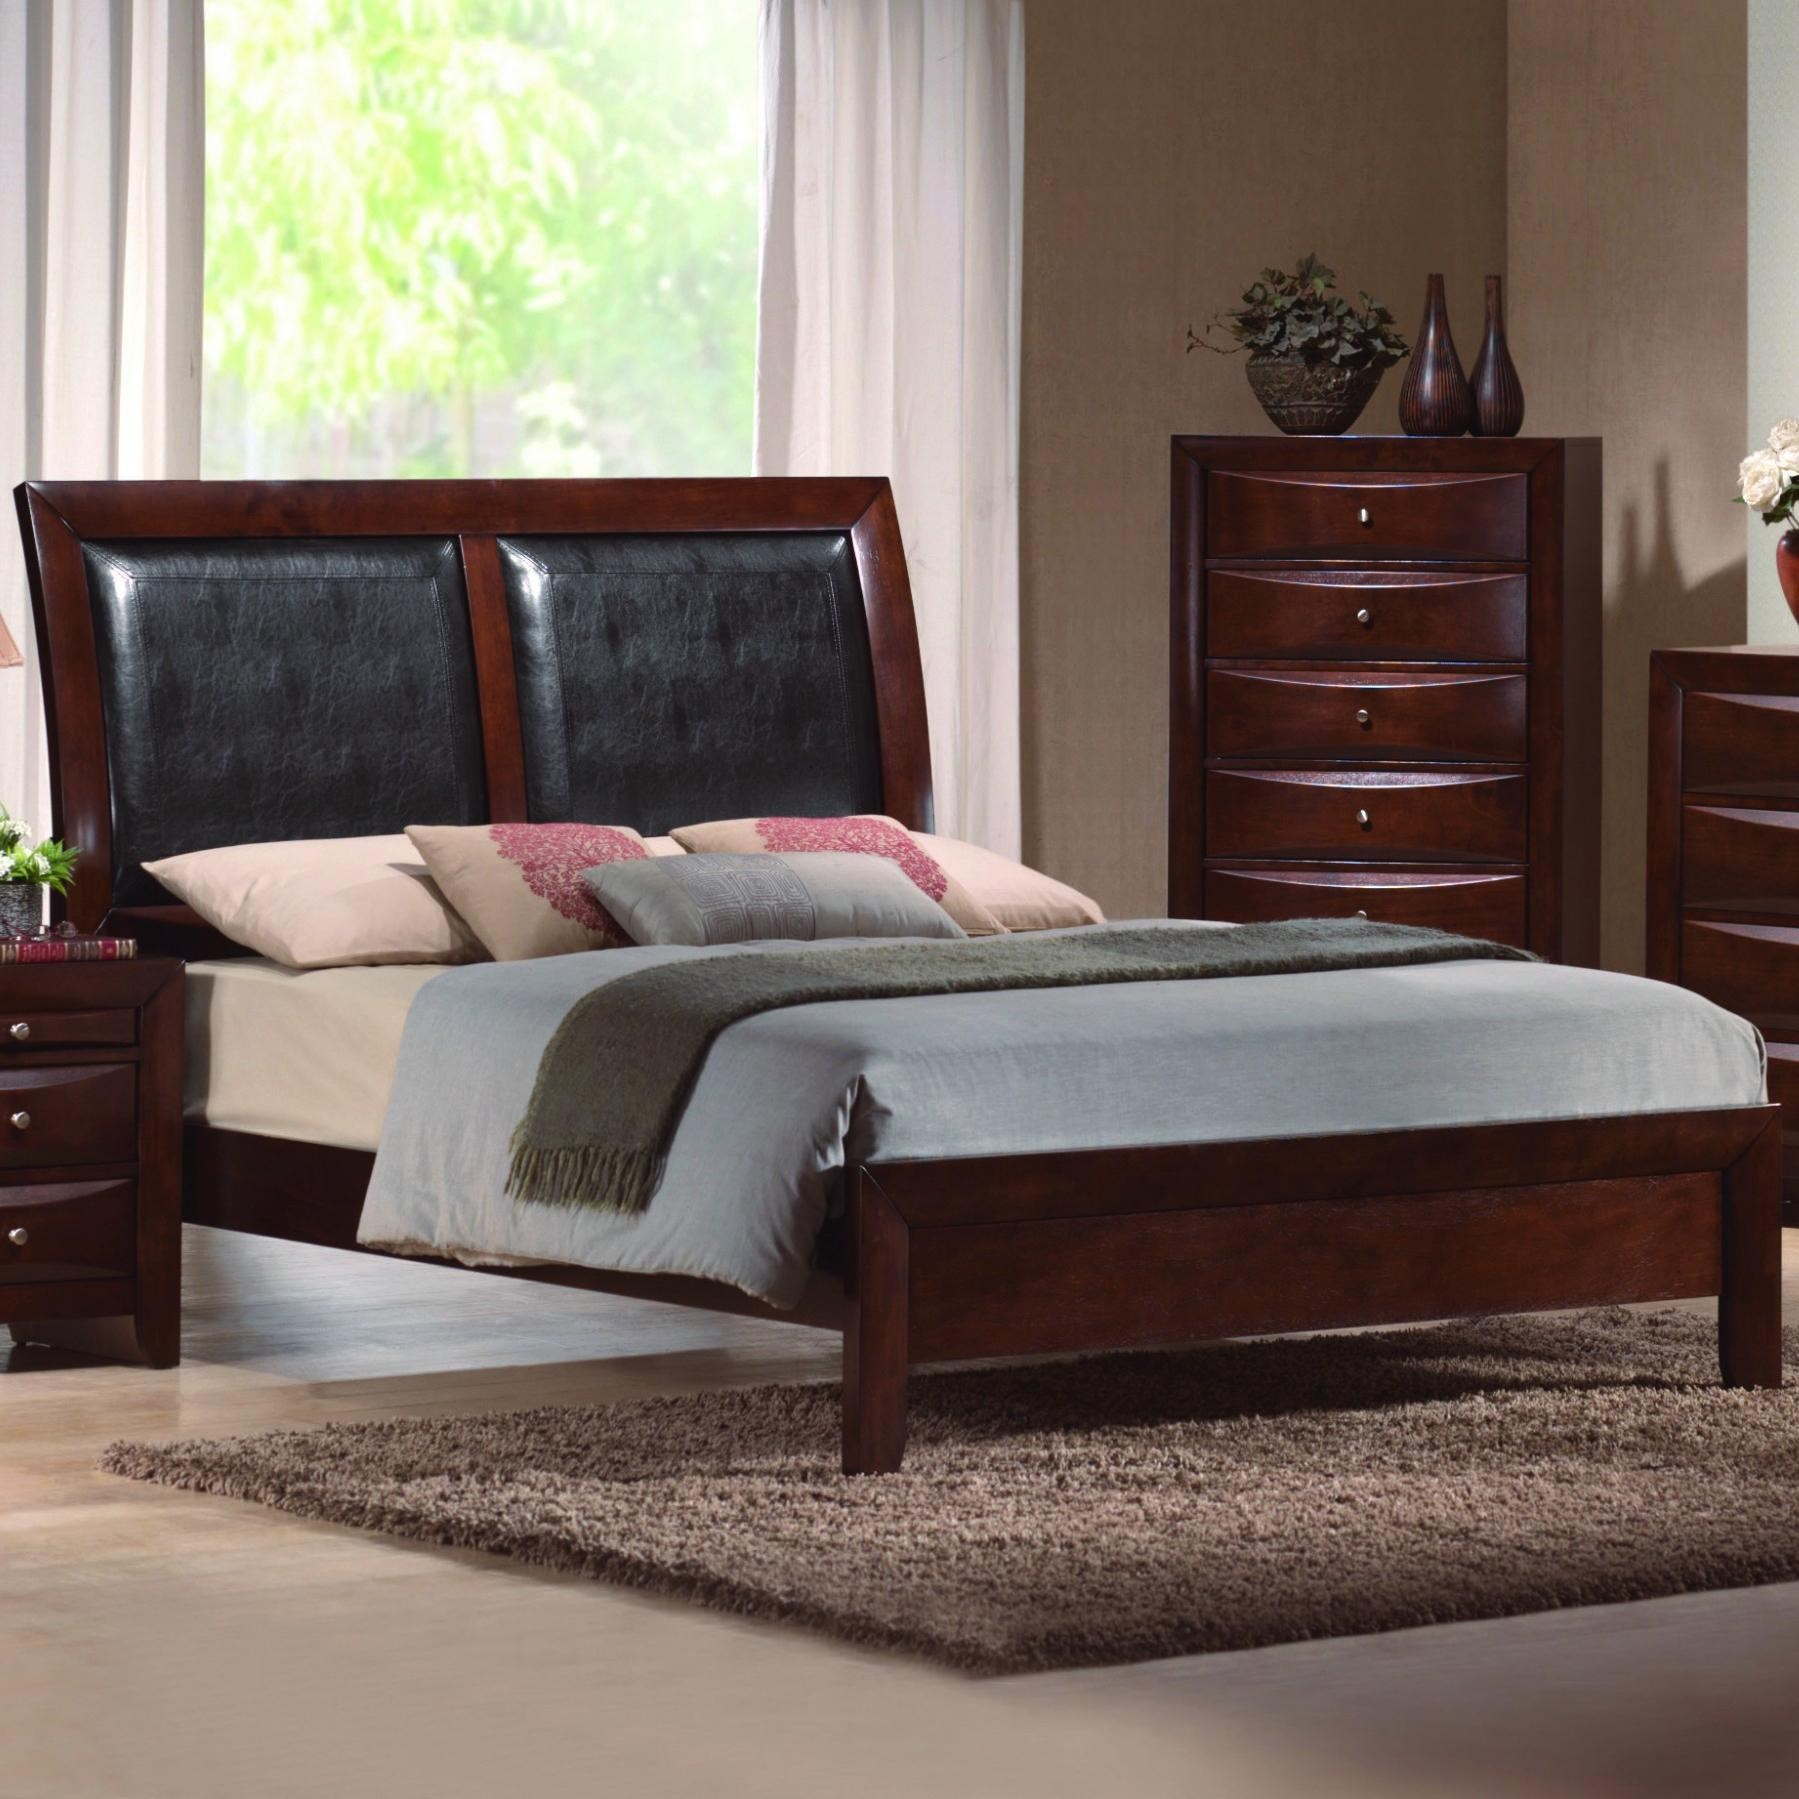 cm emily queen platform bed with upholstered sleigh headboard - Upholstered Sleigh Bed